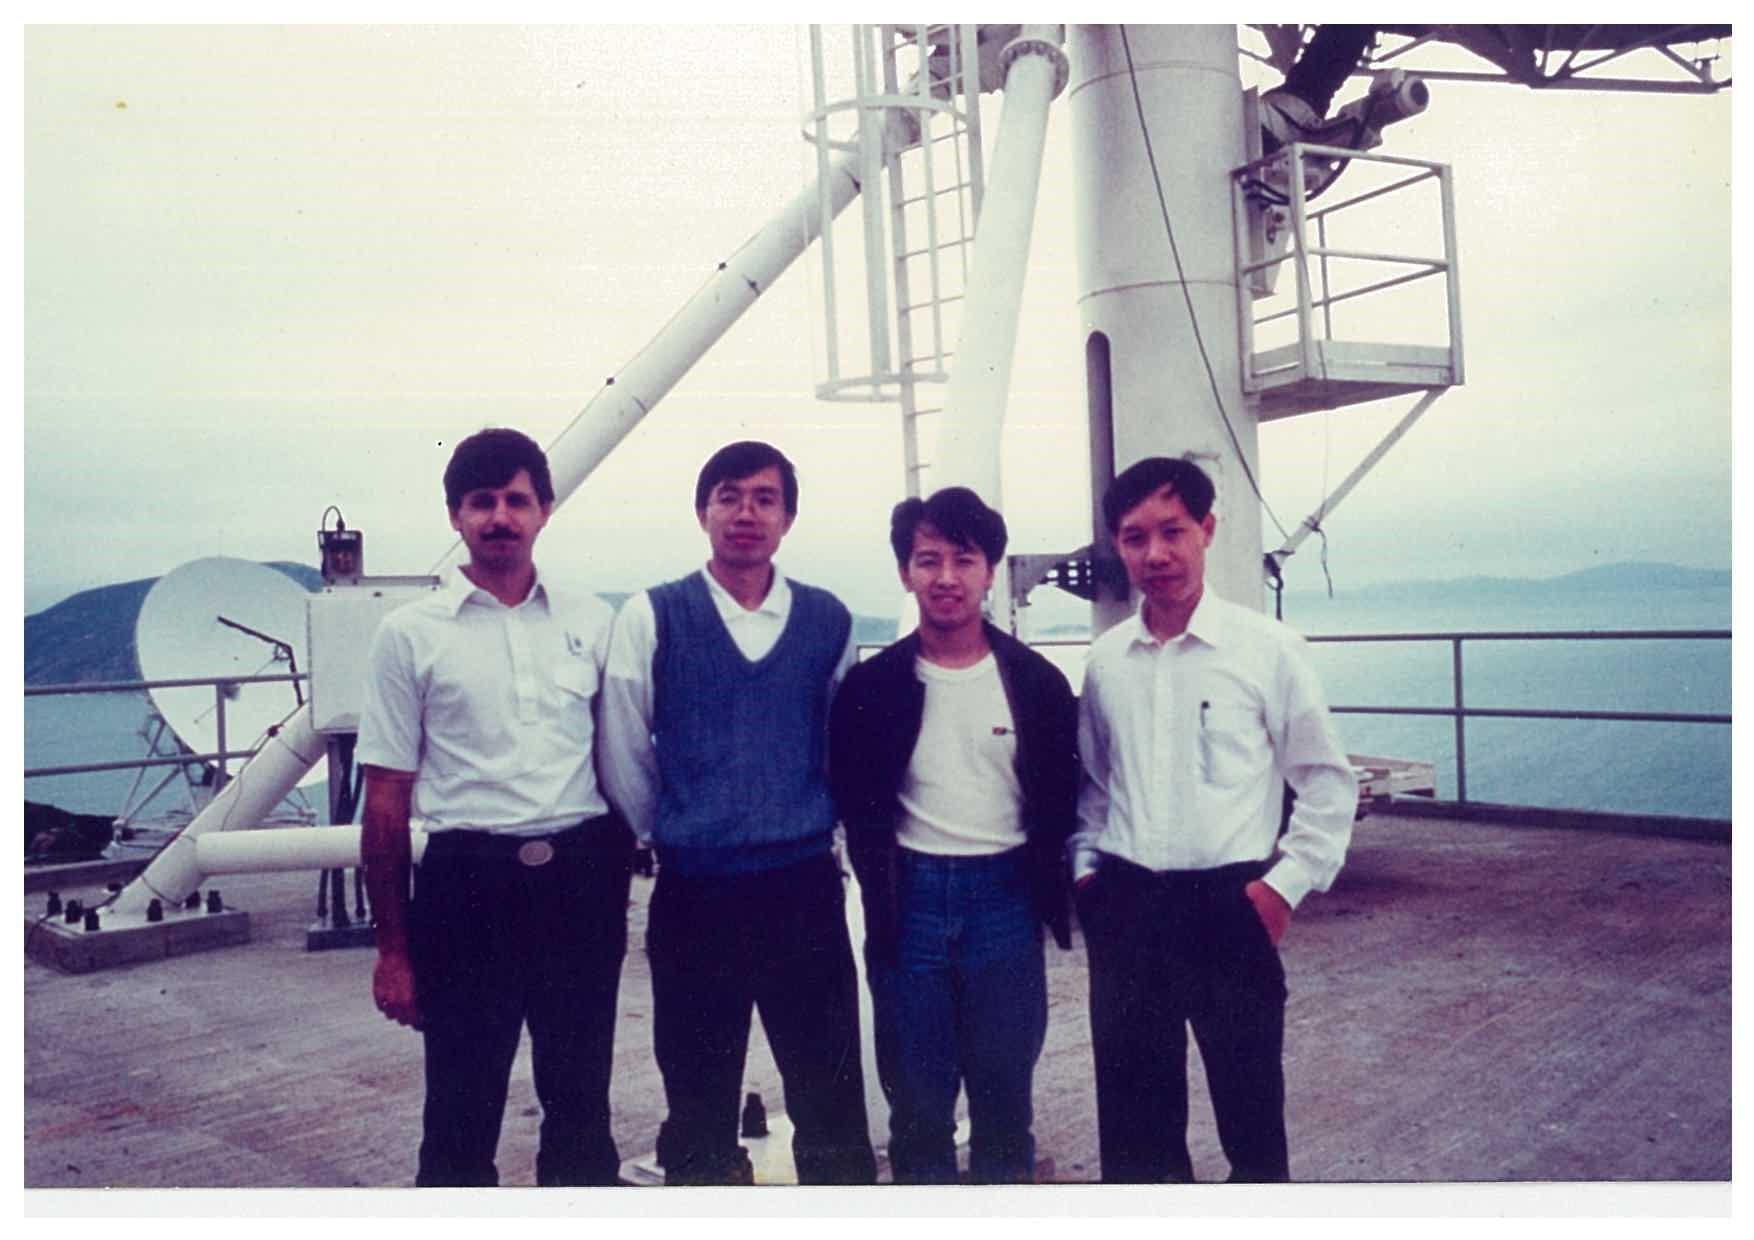 William (second from right) with colleagues and representatives from Telesat and Lockheed Martin at AsiaSat Stanley Earth Station in Hong Kong to provide AsiaSat's first time satellite tracking service in 1990 using AsiaSat's TT&C antenna and RF equipment